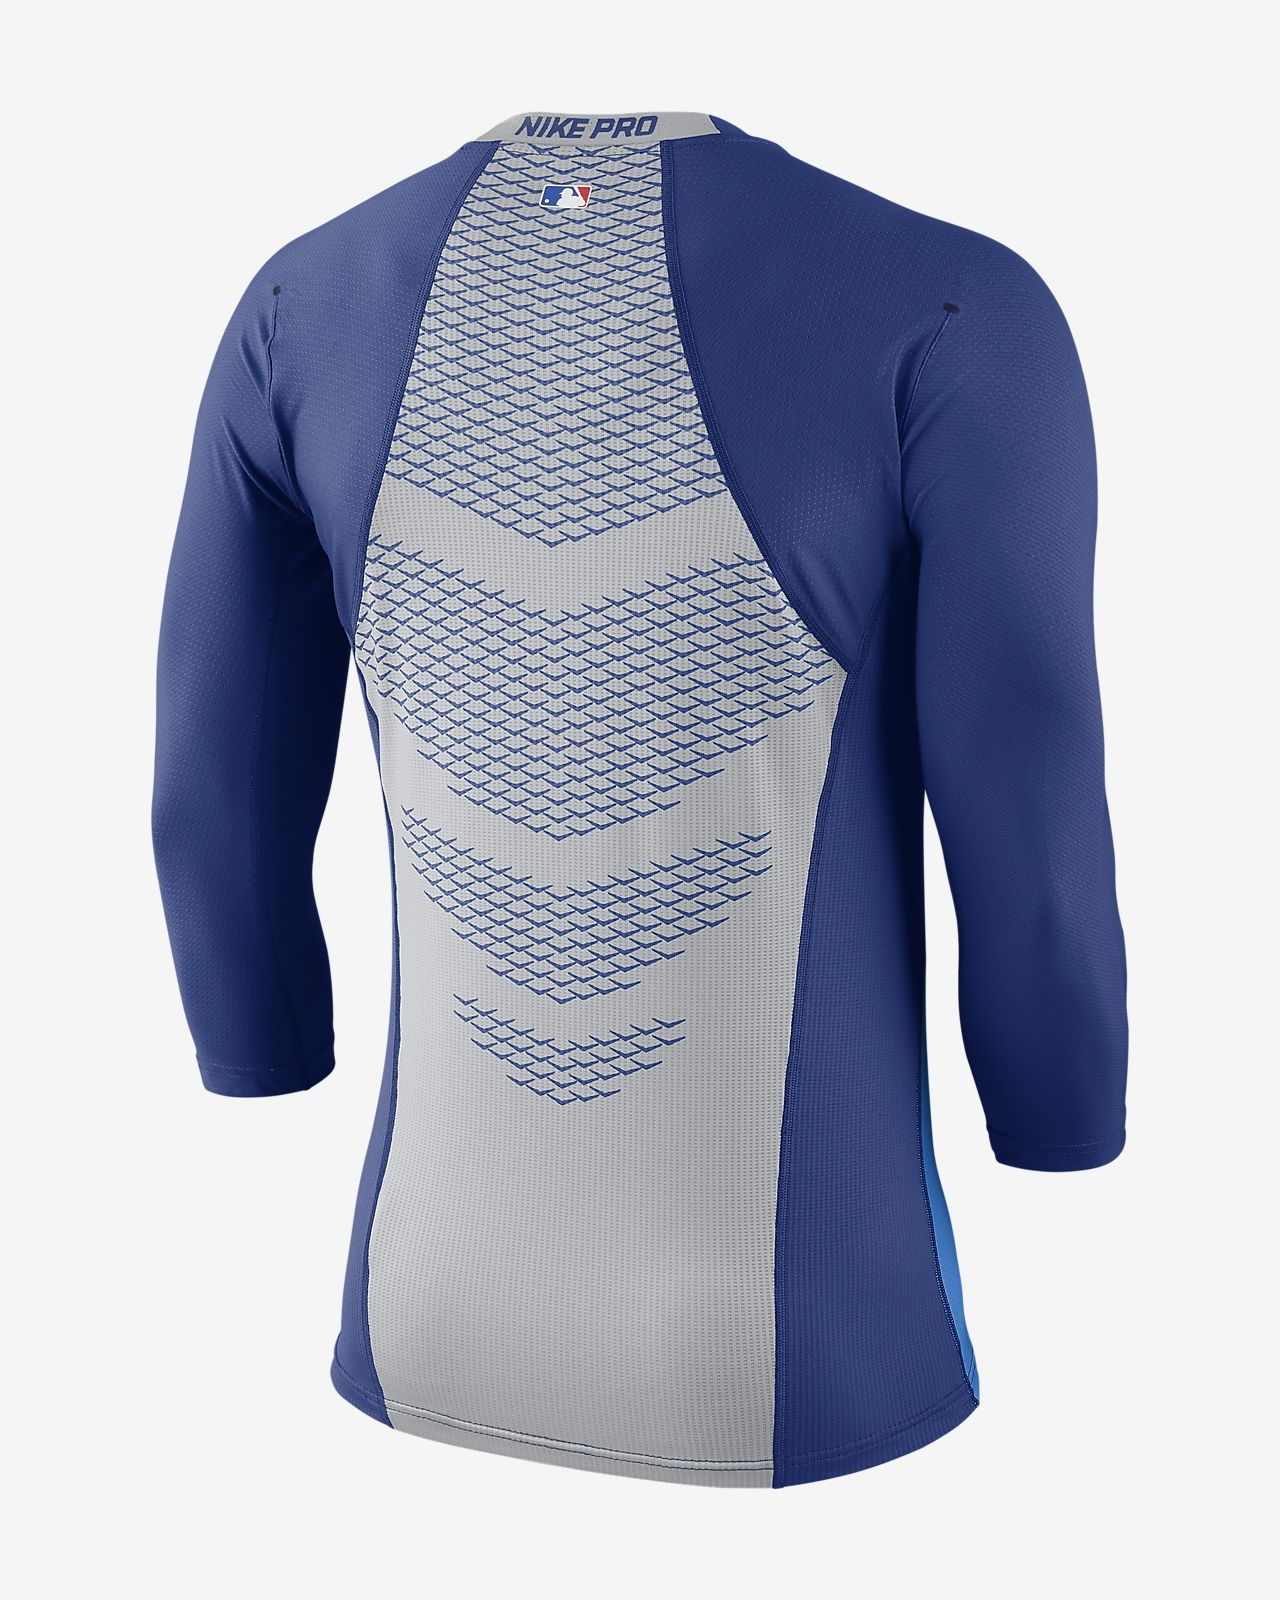 Nike Pro HyperCool (MLB Dodgers) Men's 3/4 Sleeve Top